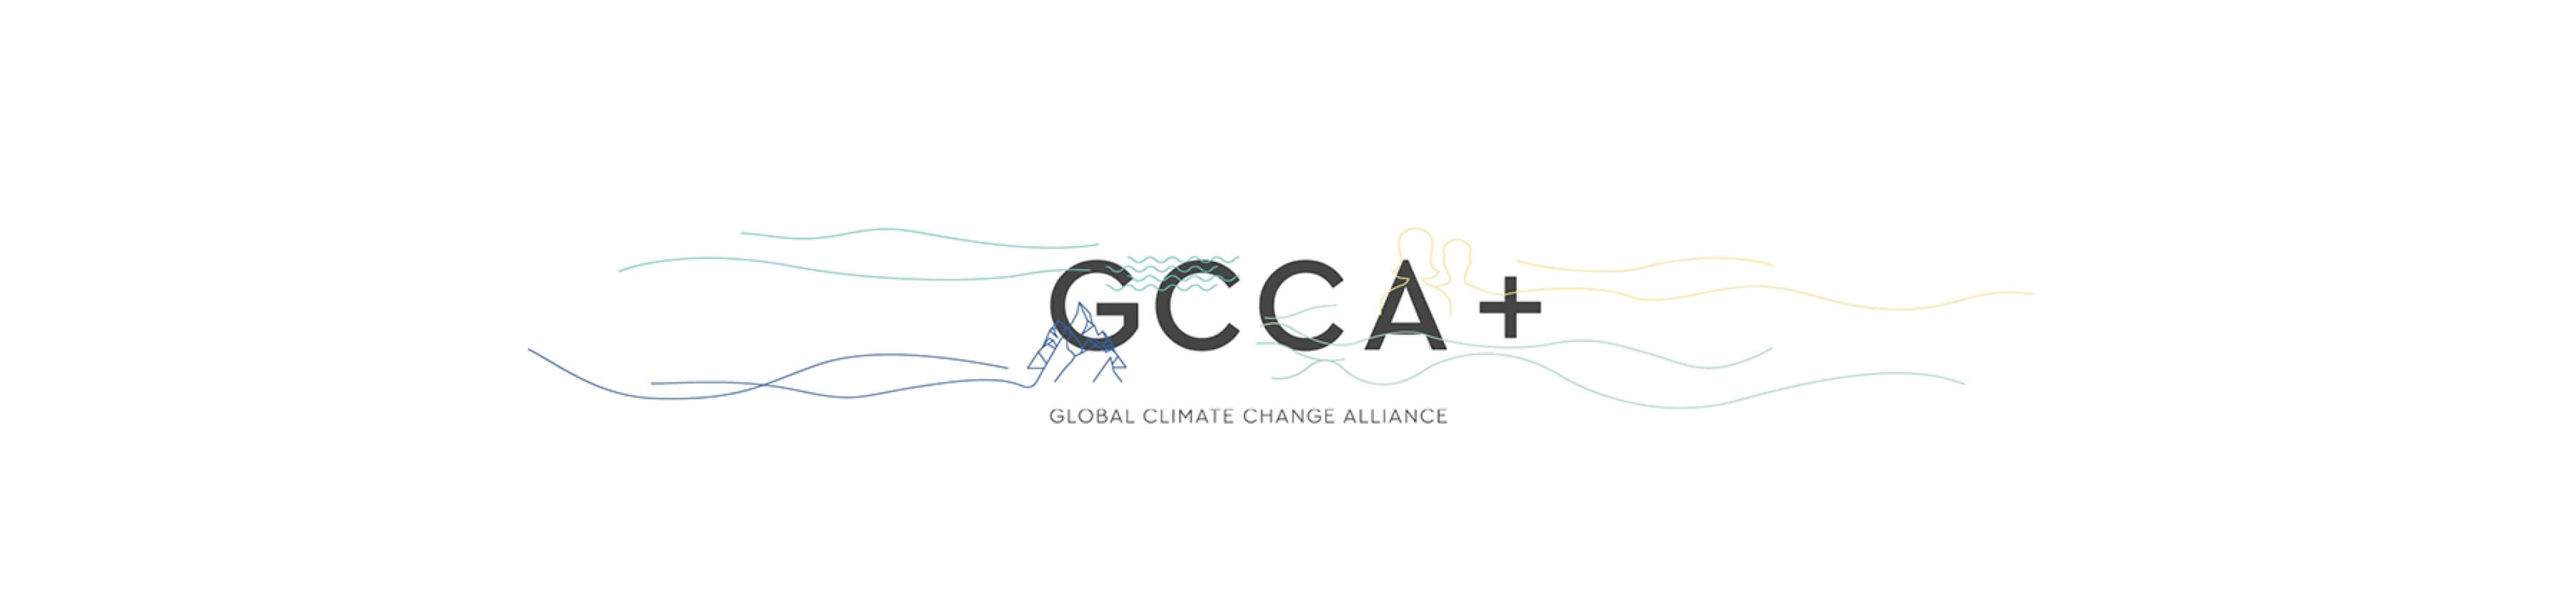 GCCA+ Global Climate Change Alliance - Blossom